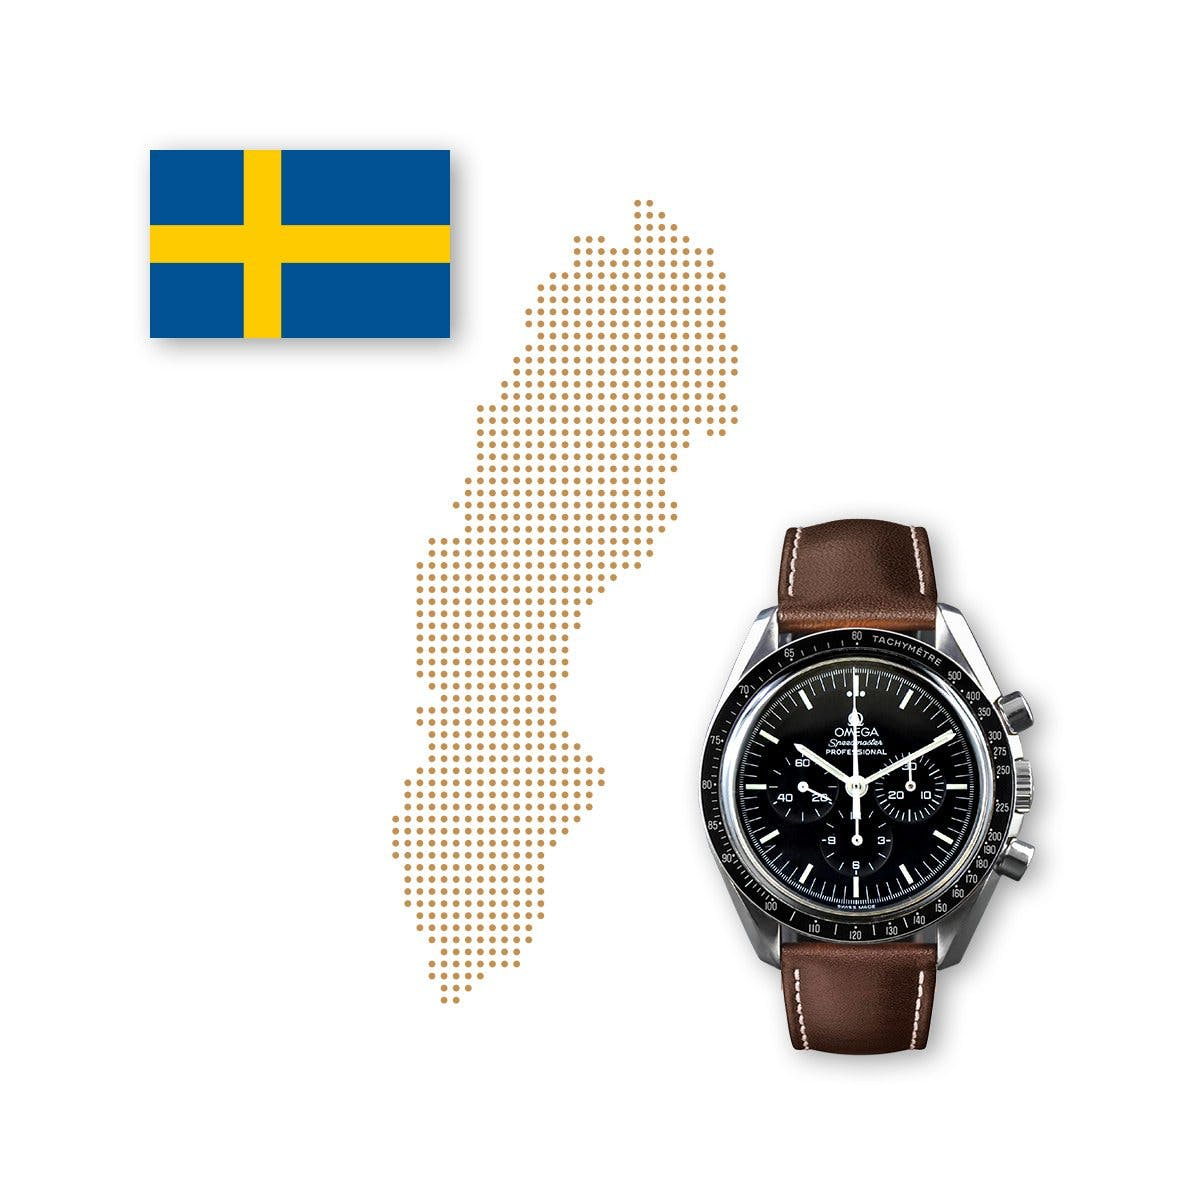 In Sweden, Omega is closer to Rolex in the watch rankings than in other countries.